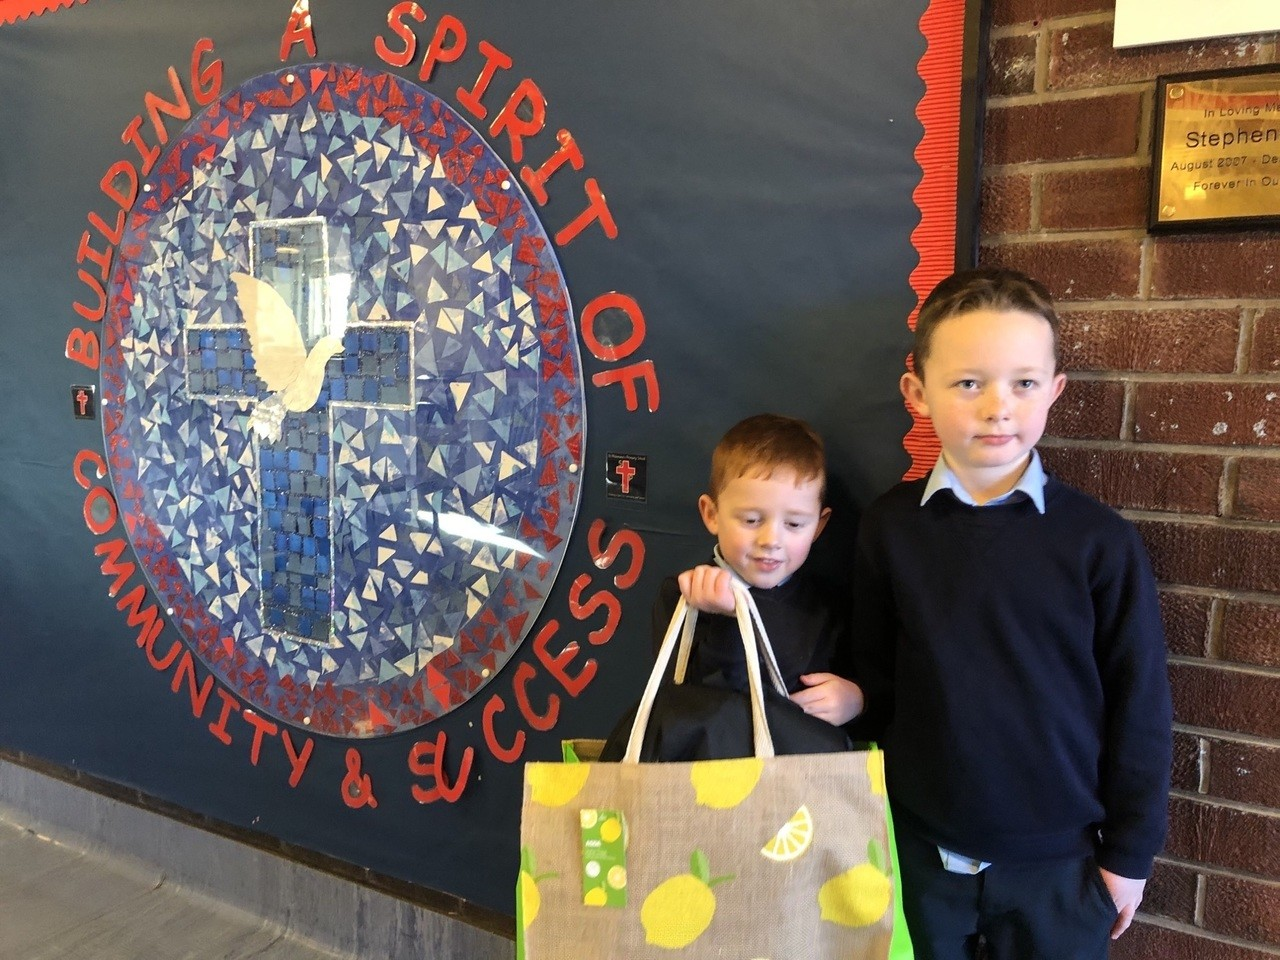 Kids from St Philomena's collect their laptops | Asda Robroyston